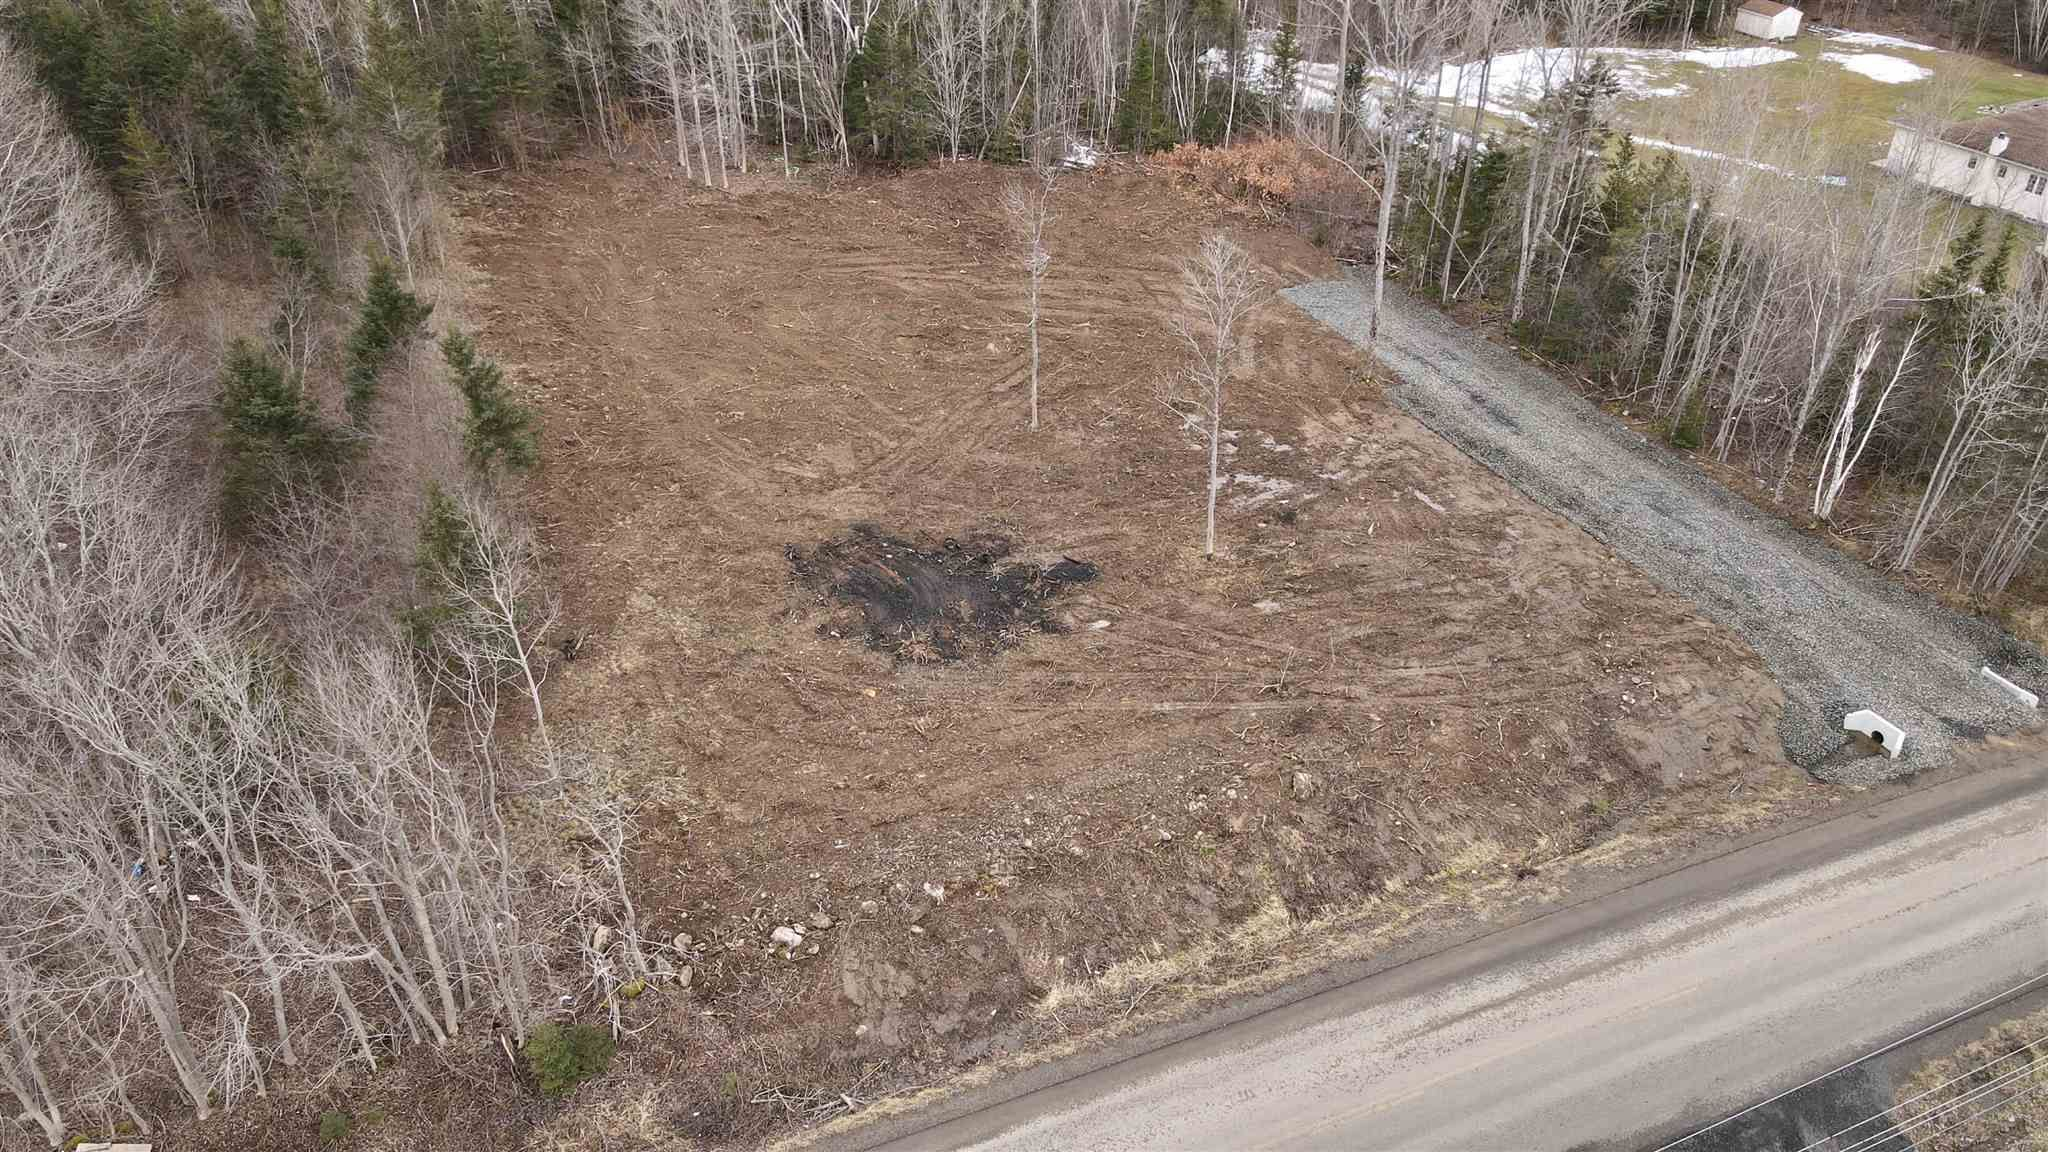 Main Photo: Lot 6 Back Road in Lansdowne: 401-Digby County Vacant Land for sale (Annapolis Valley)  : MLS®# 202100793